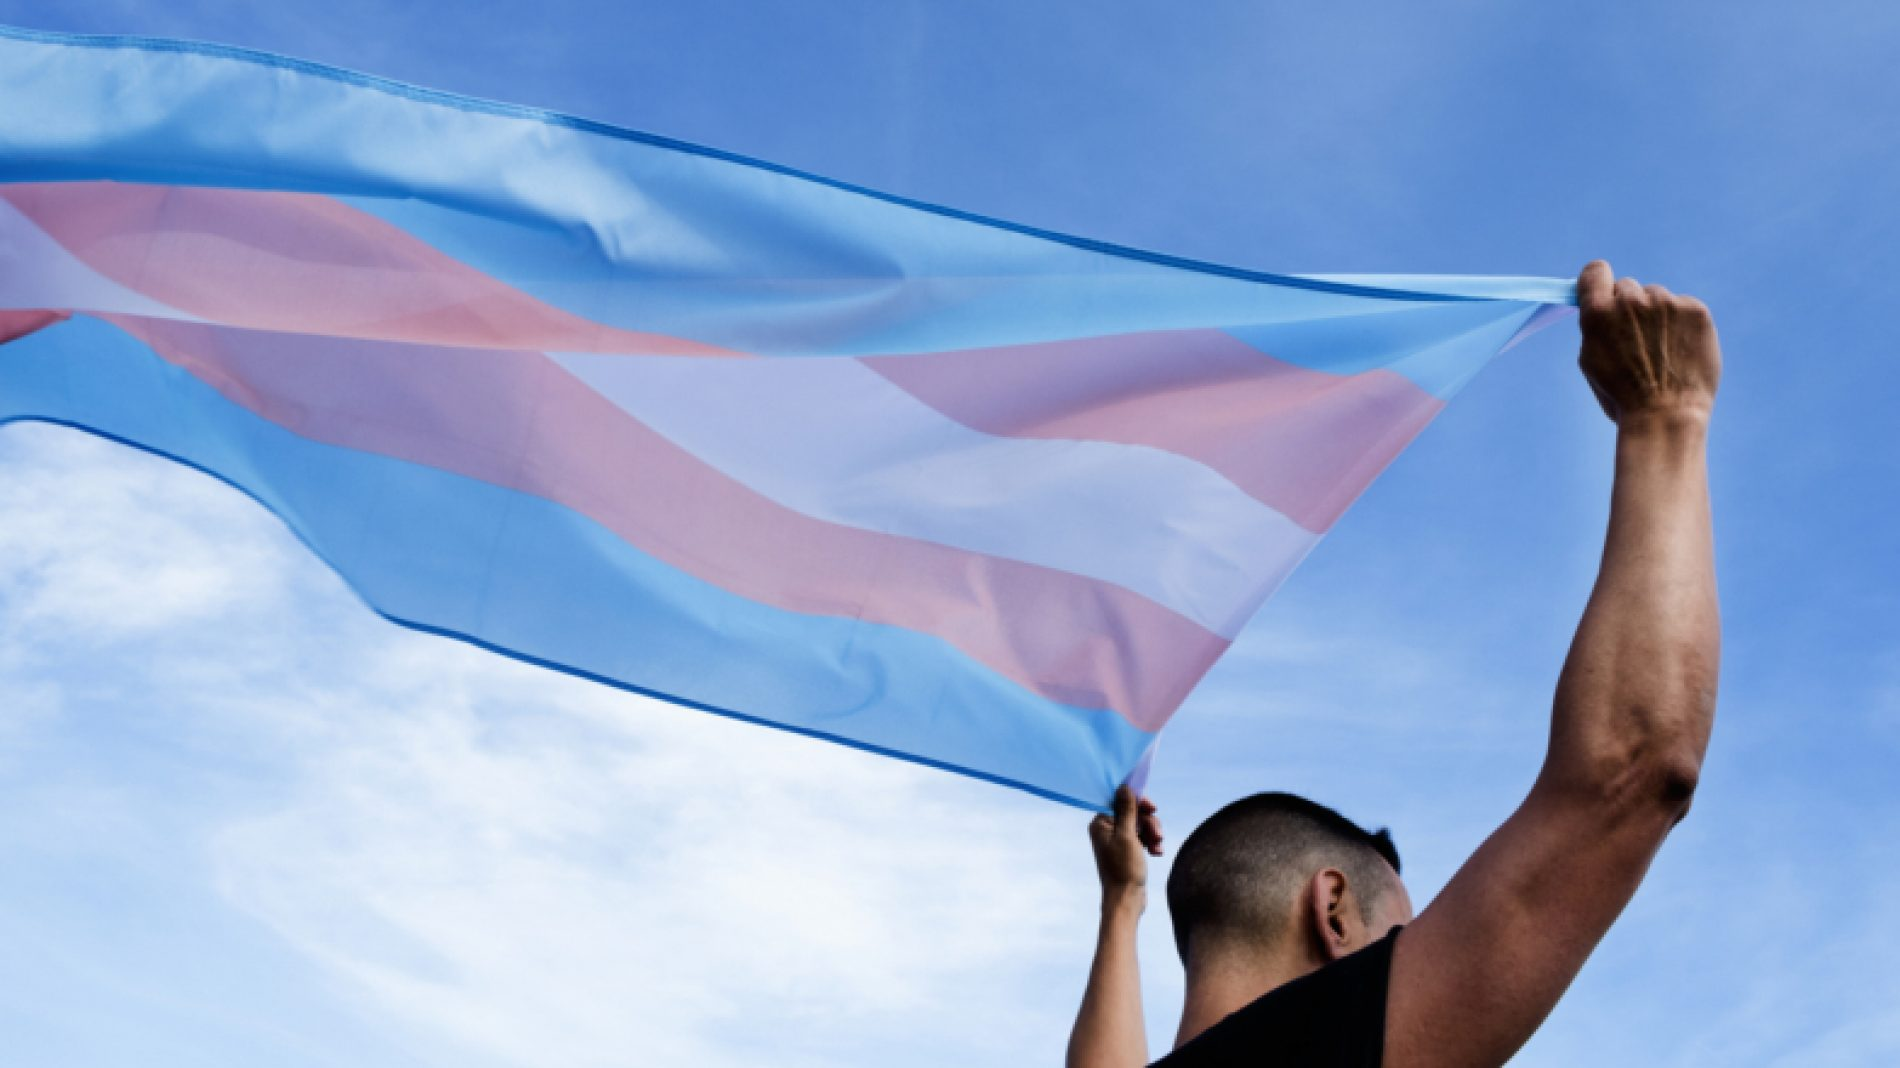 Young-person-holding-a-trans-pride-flag-BsDeGc